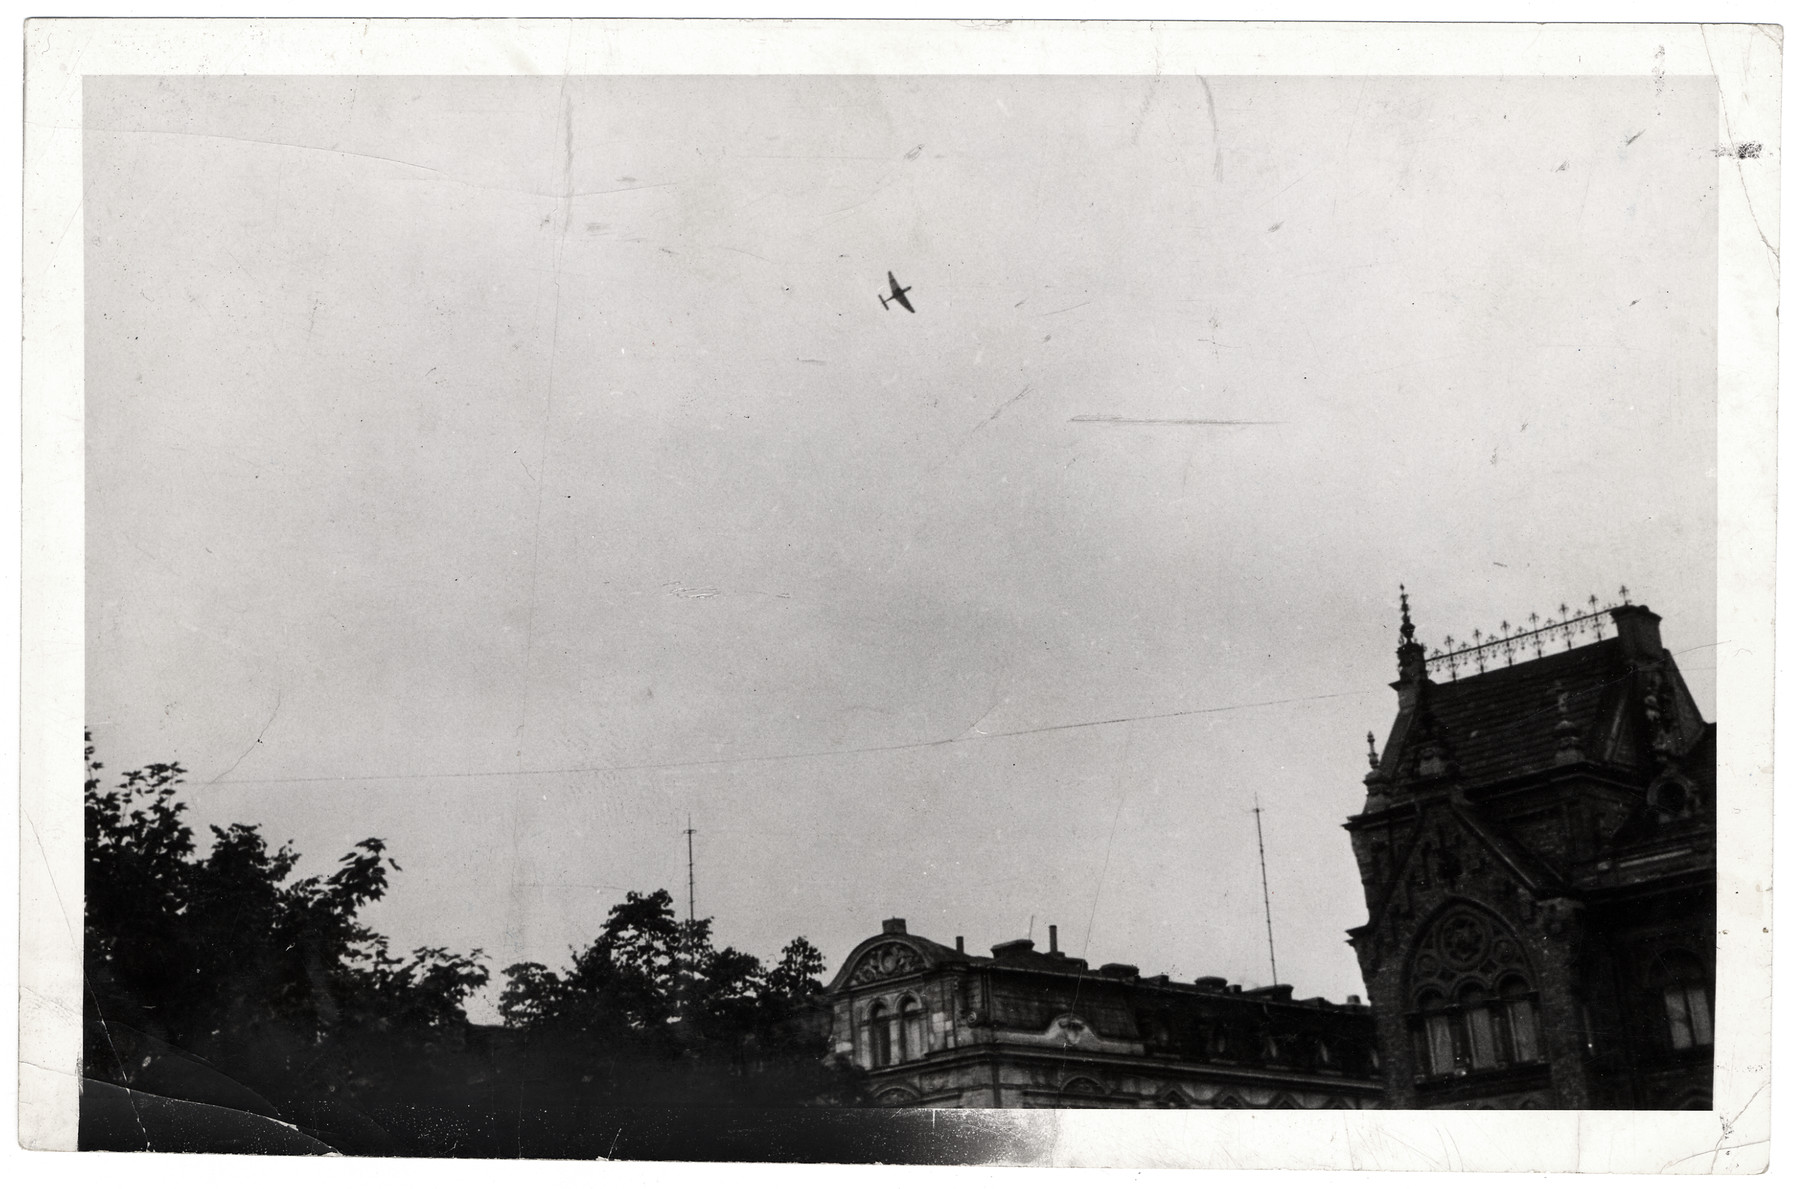 A German bomber flies over Warsaw.